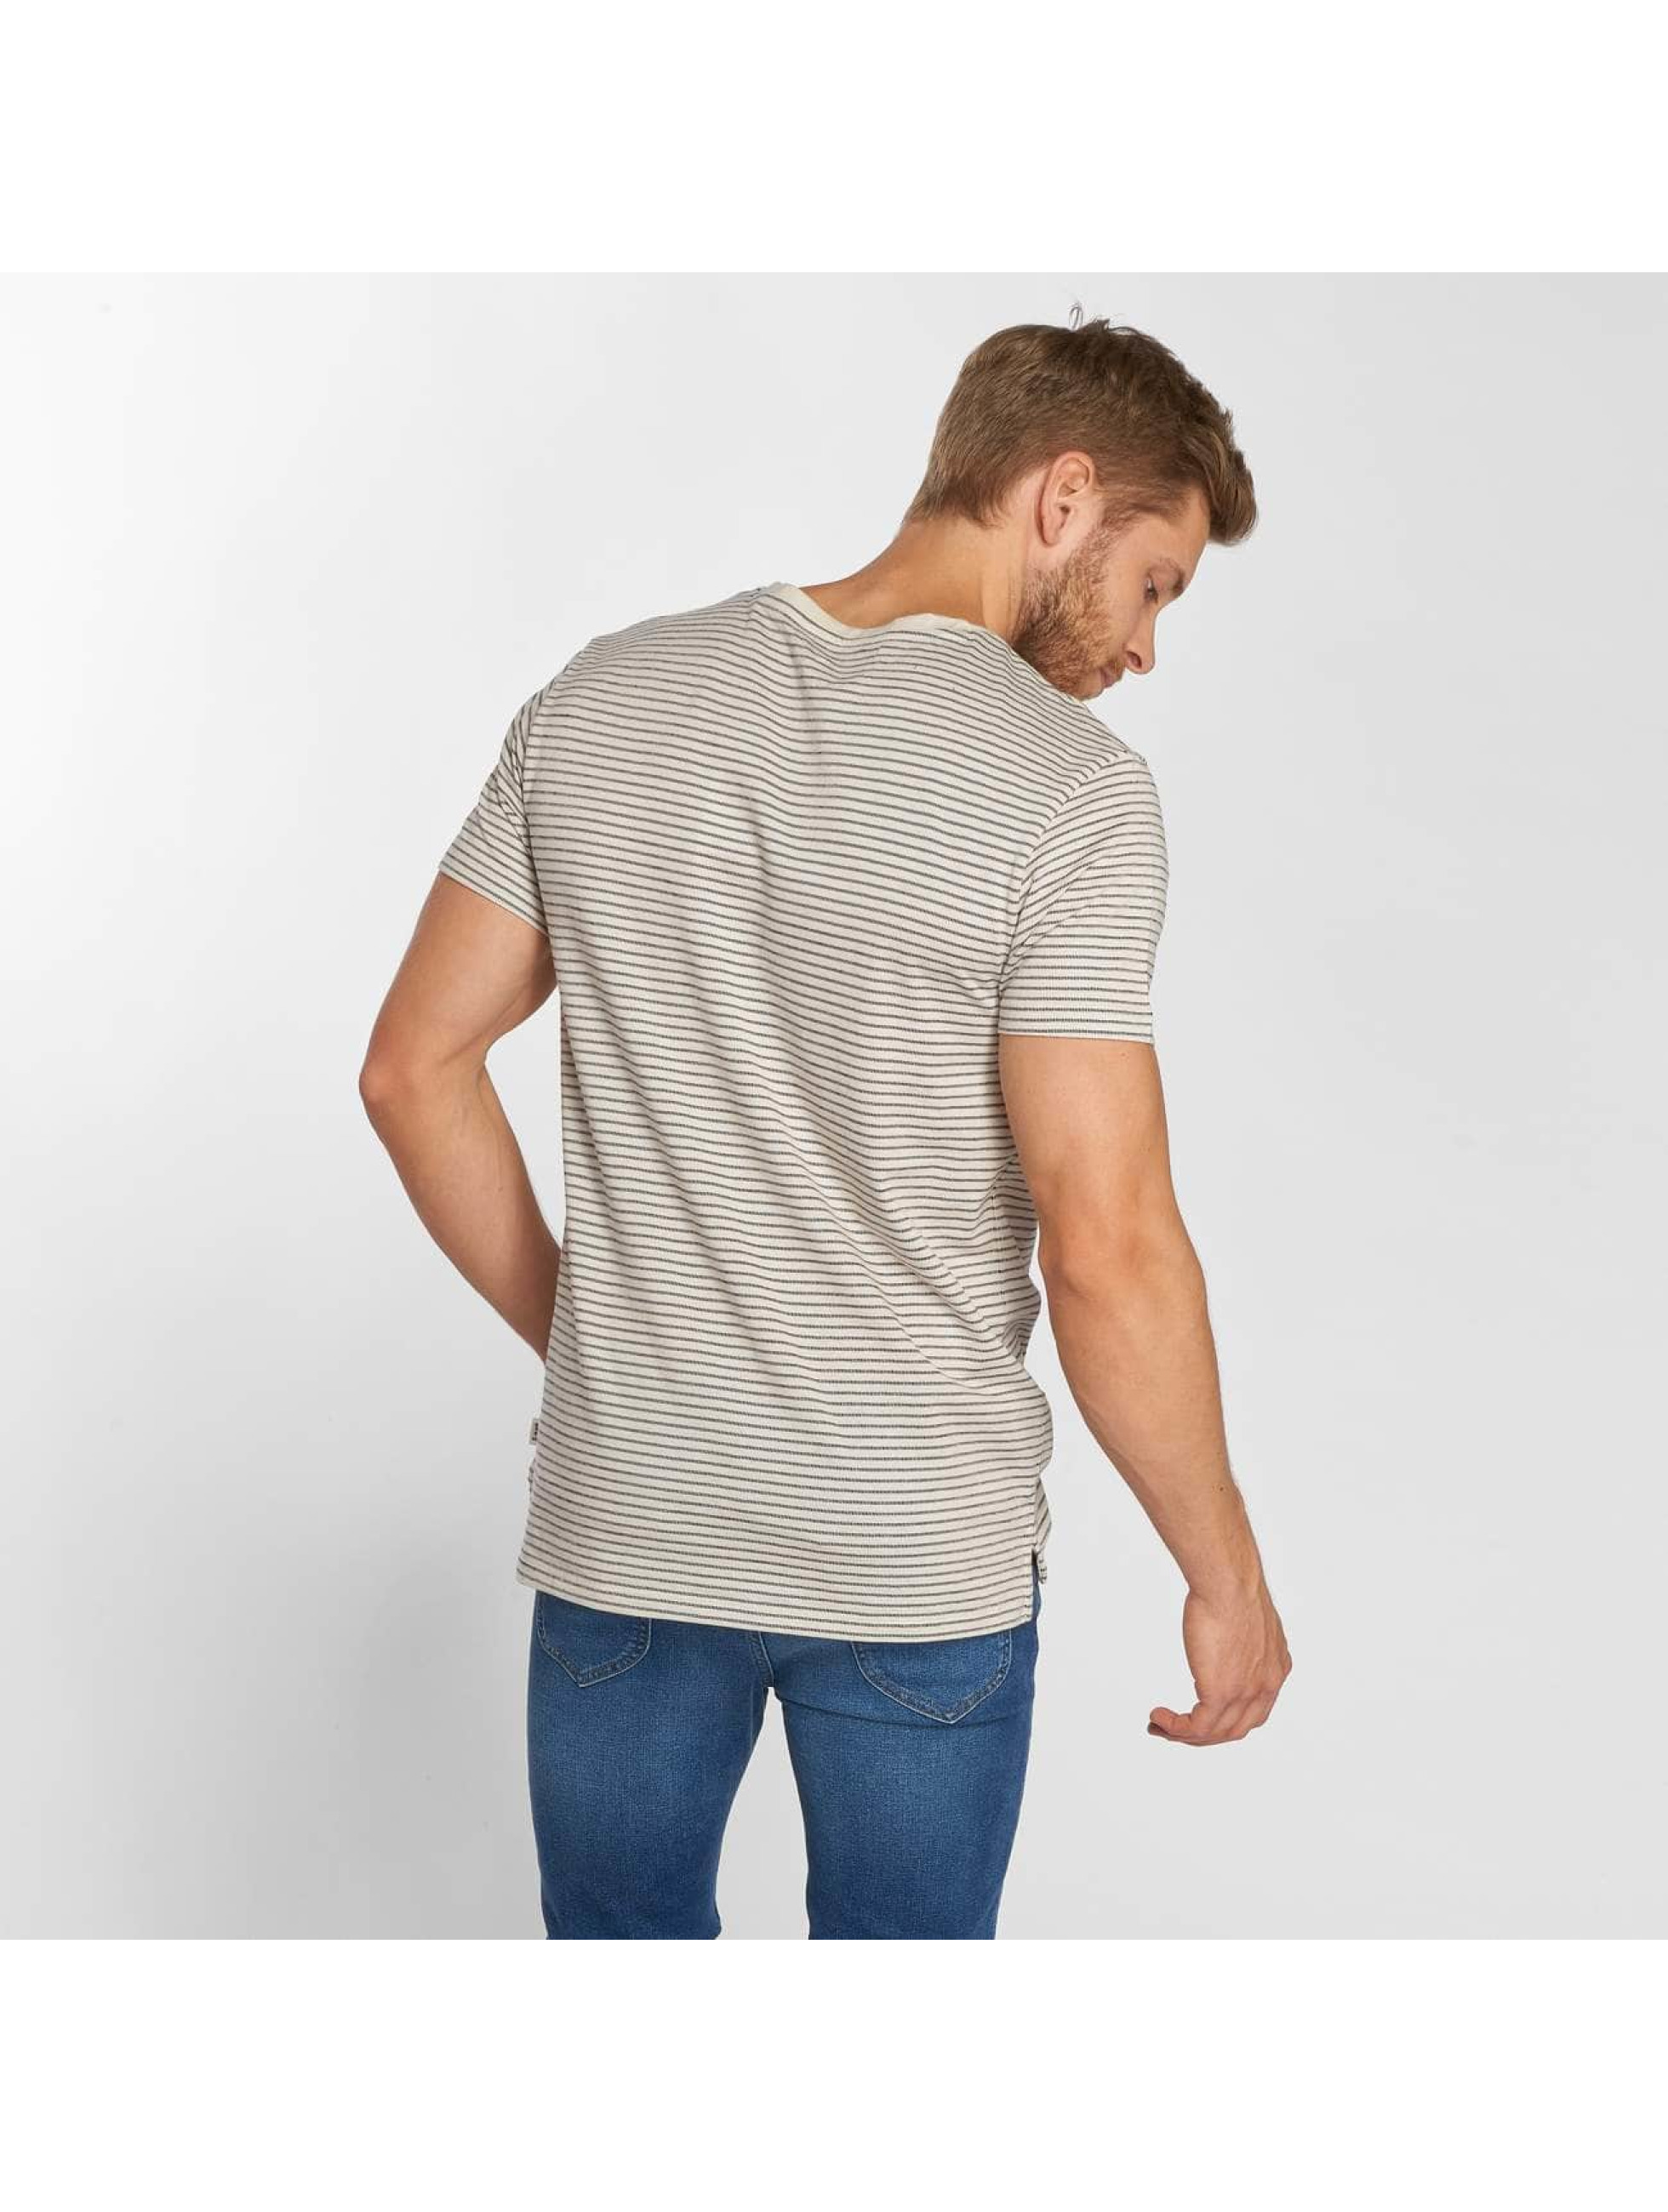 Lee T-Shirt Stripe beige